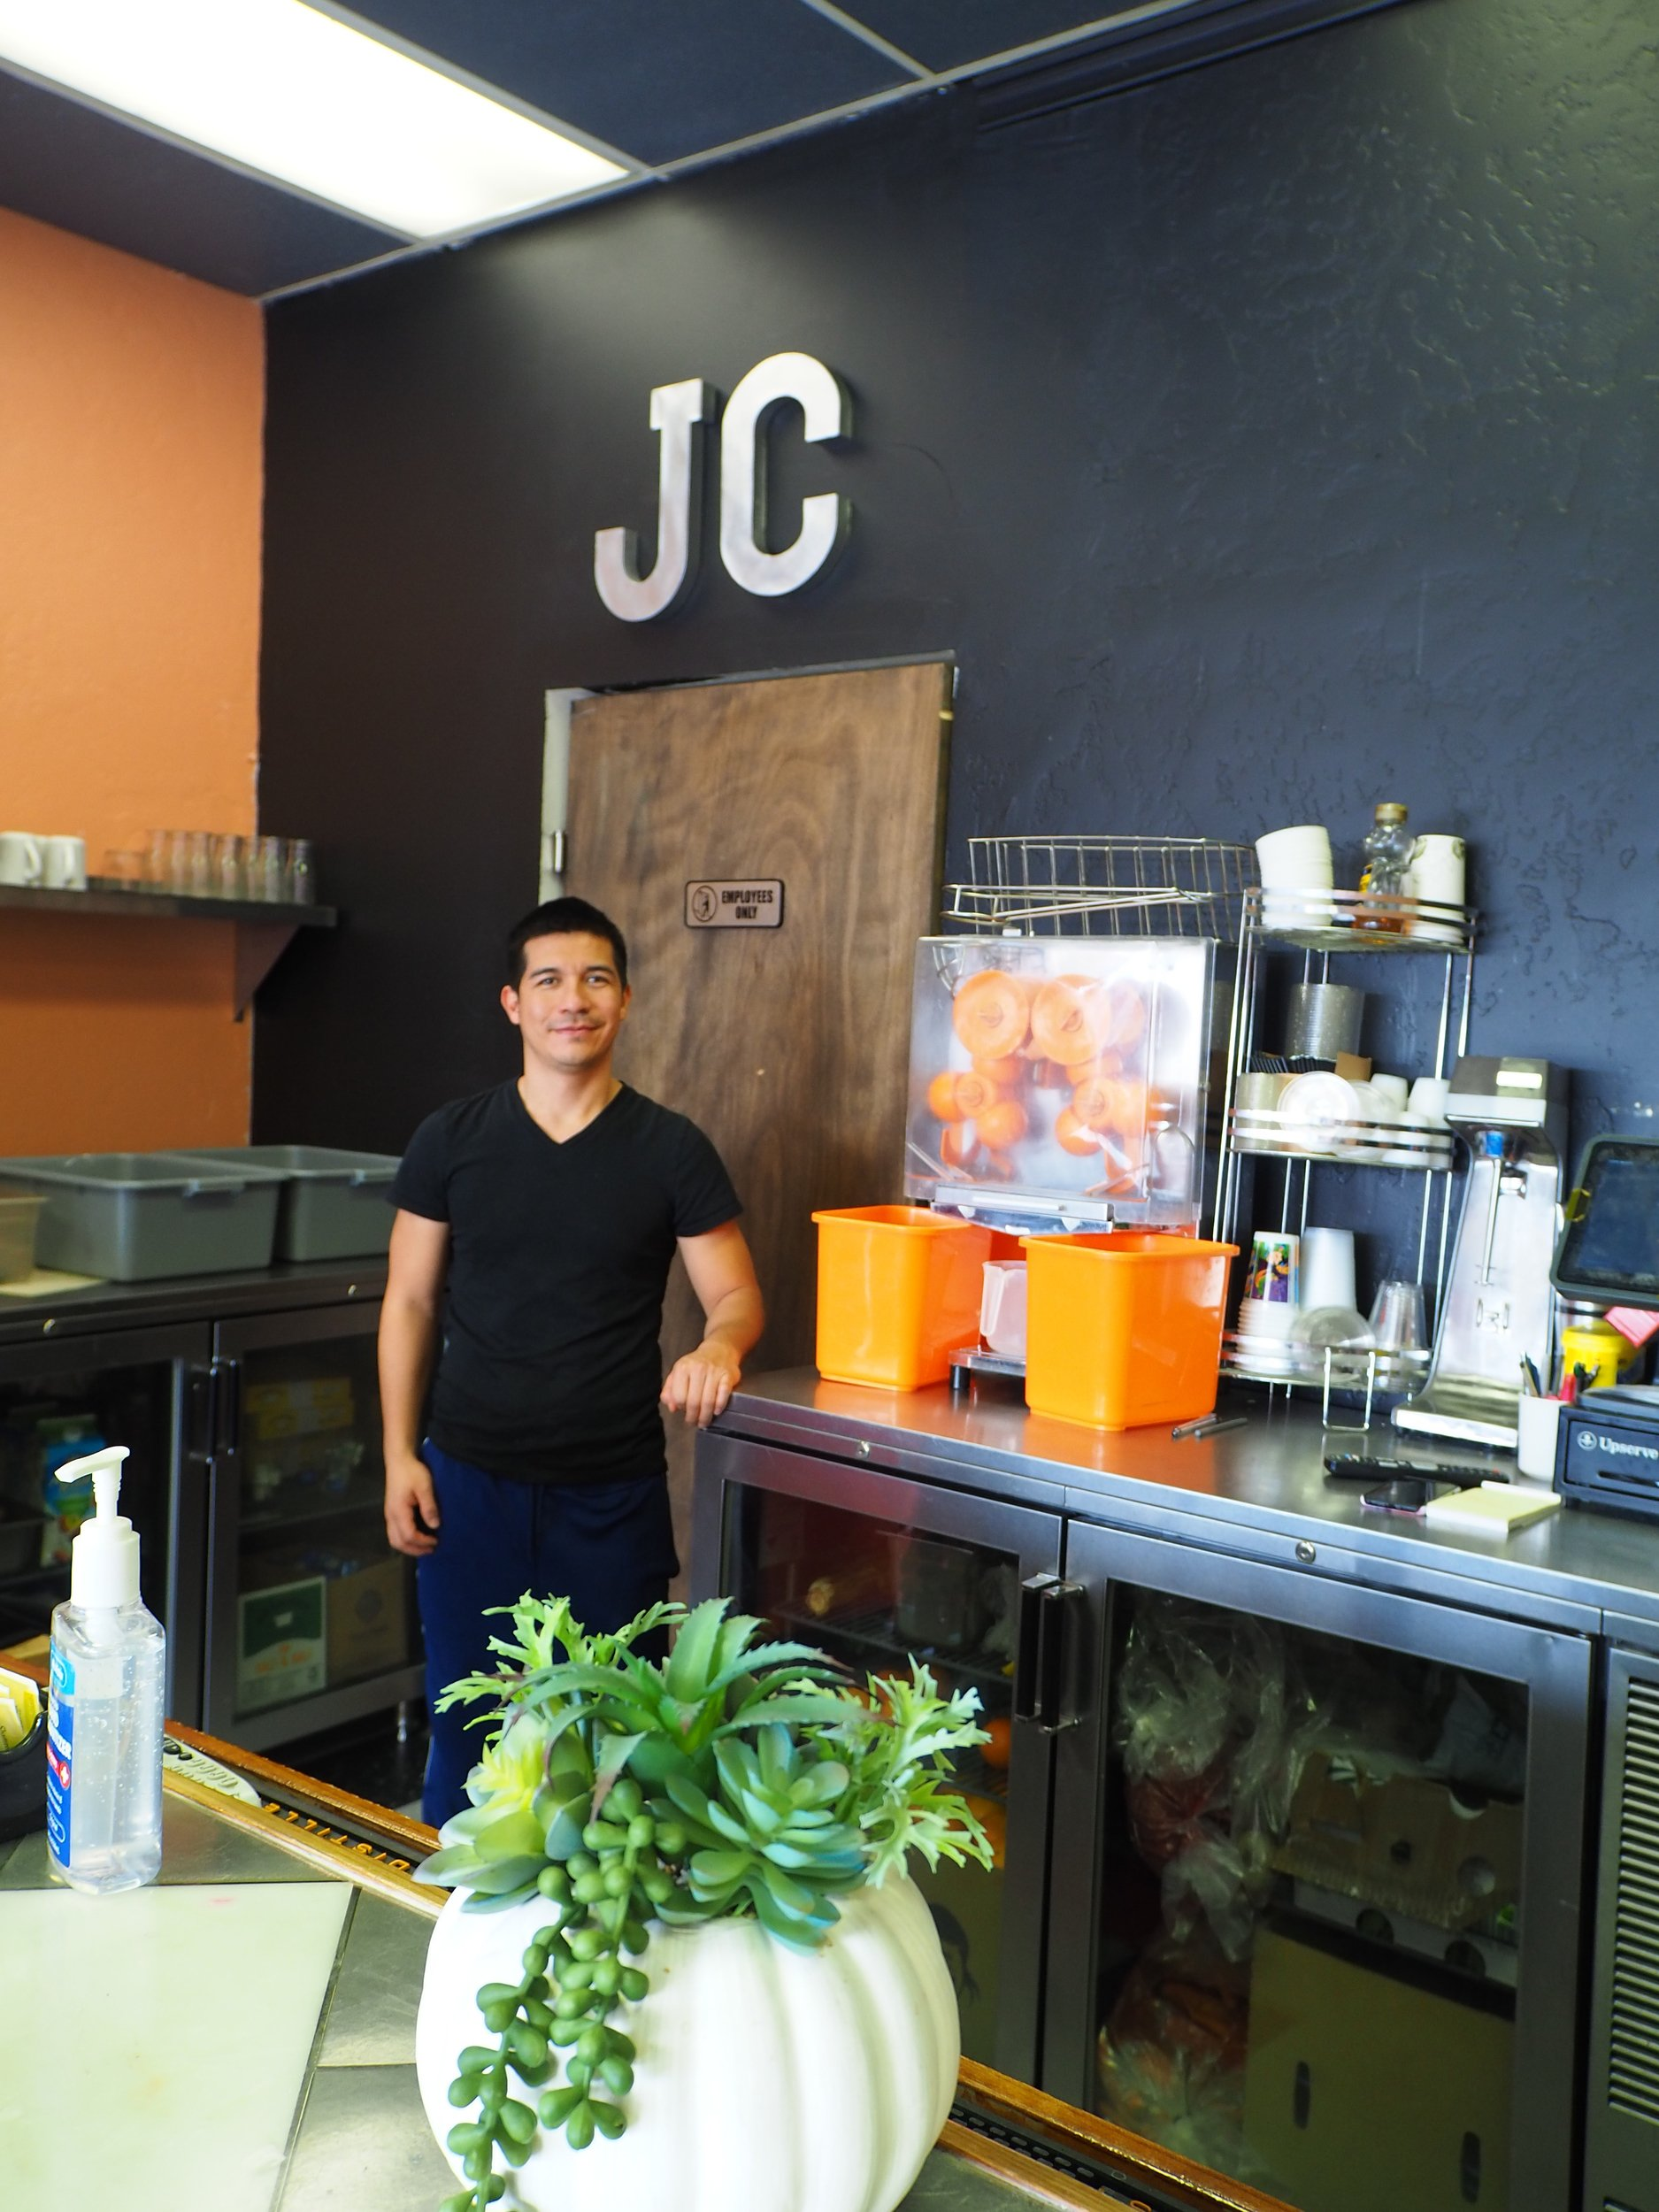 Trino Camacho Torres opened JC's Breakfast and Lunch in Dec. 2019. Photo by Raleigh Burleigh.